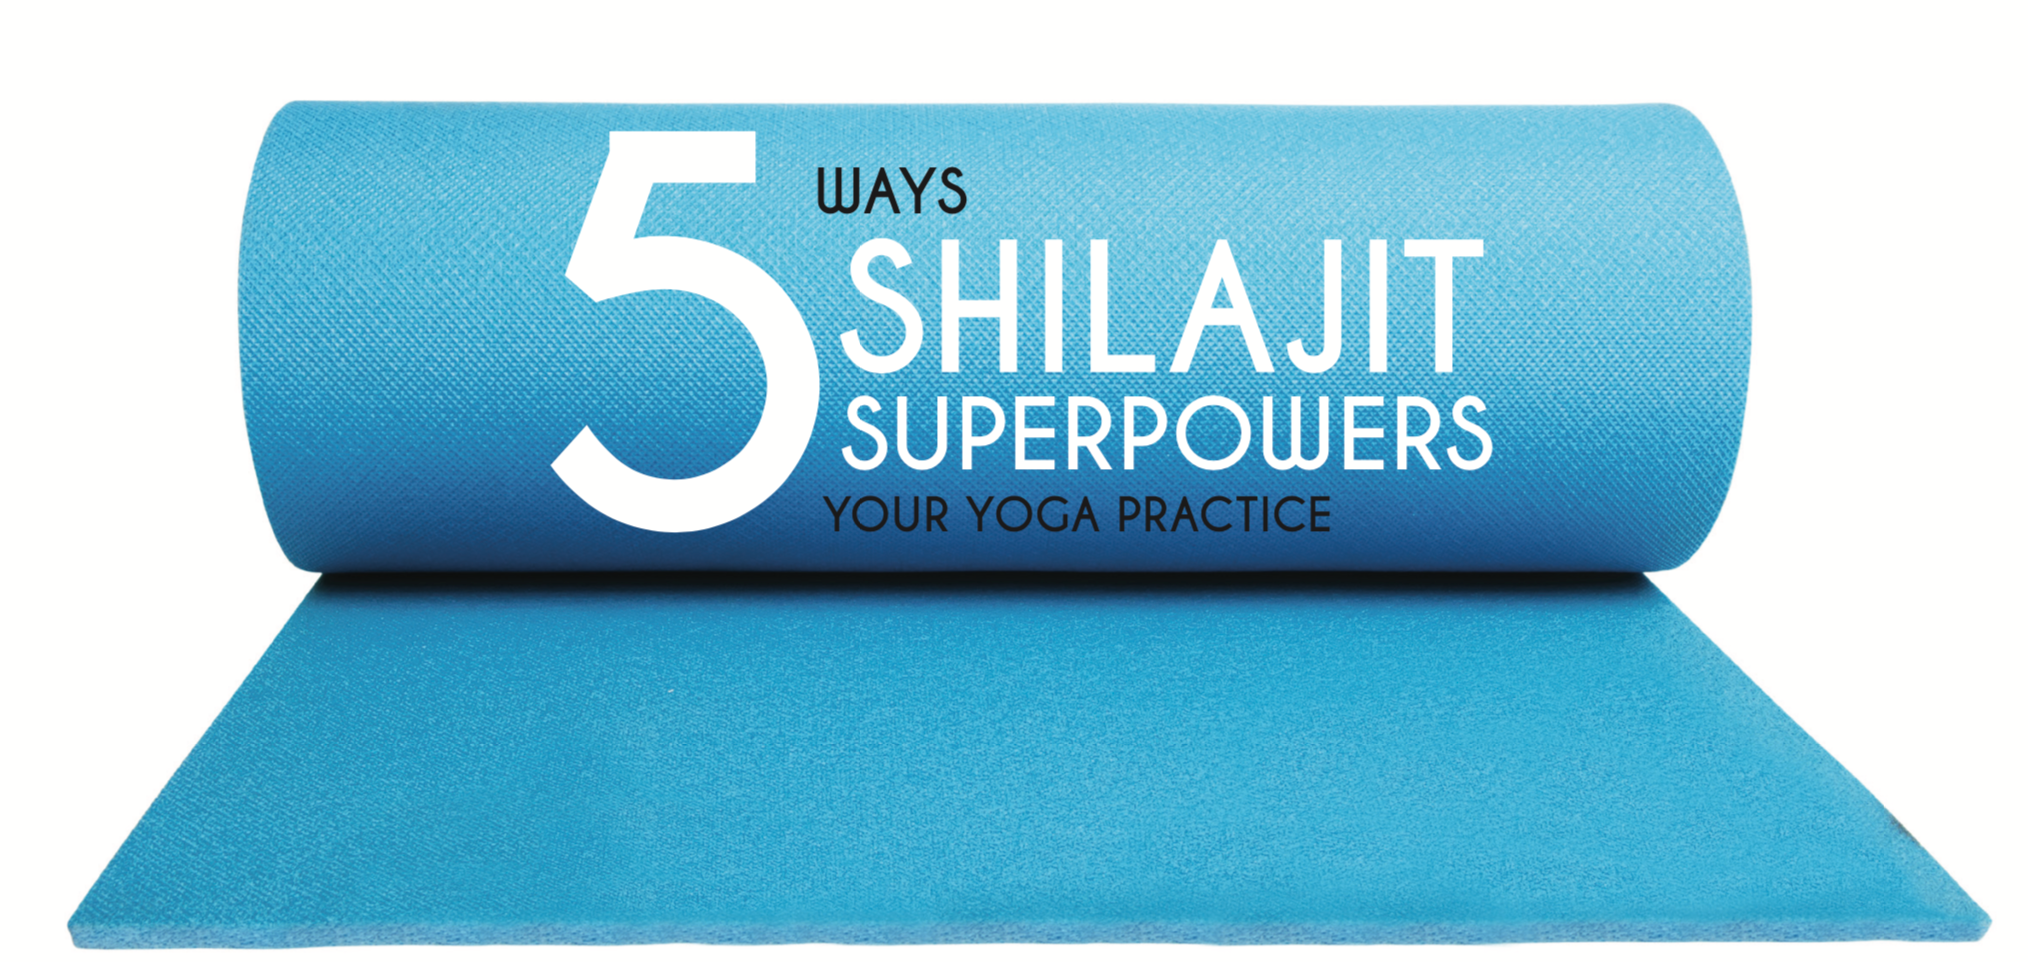 5 ways shilajit can superpower your yoga practise